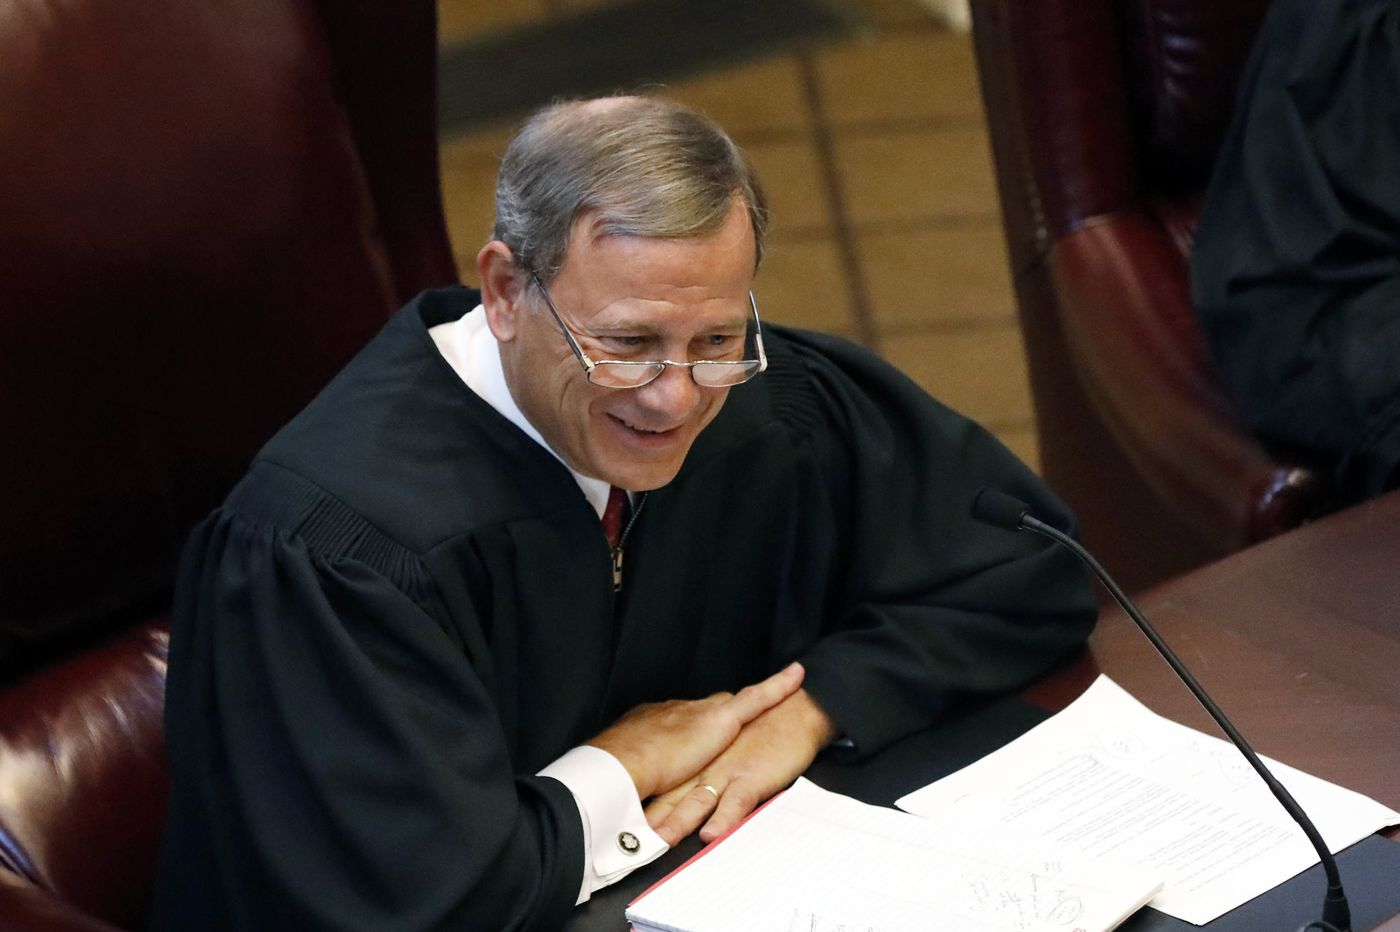 Chief Justice Roberts is wrong. We do have Obama judges and Trump judges. | Marc Thiessen